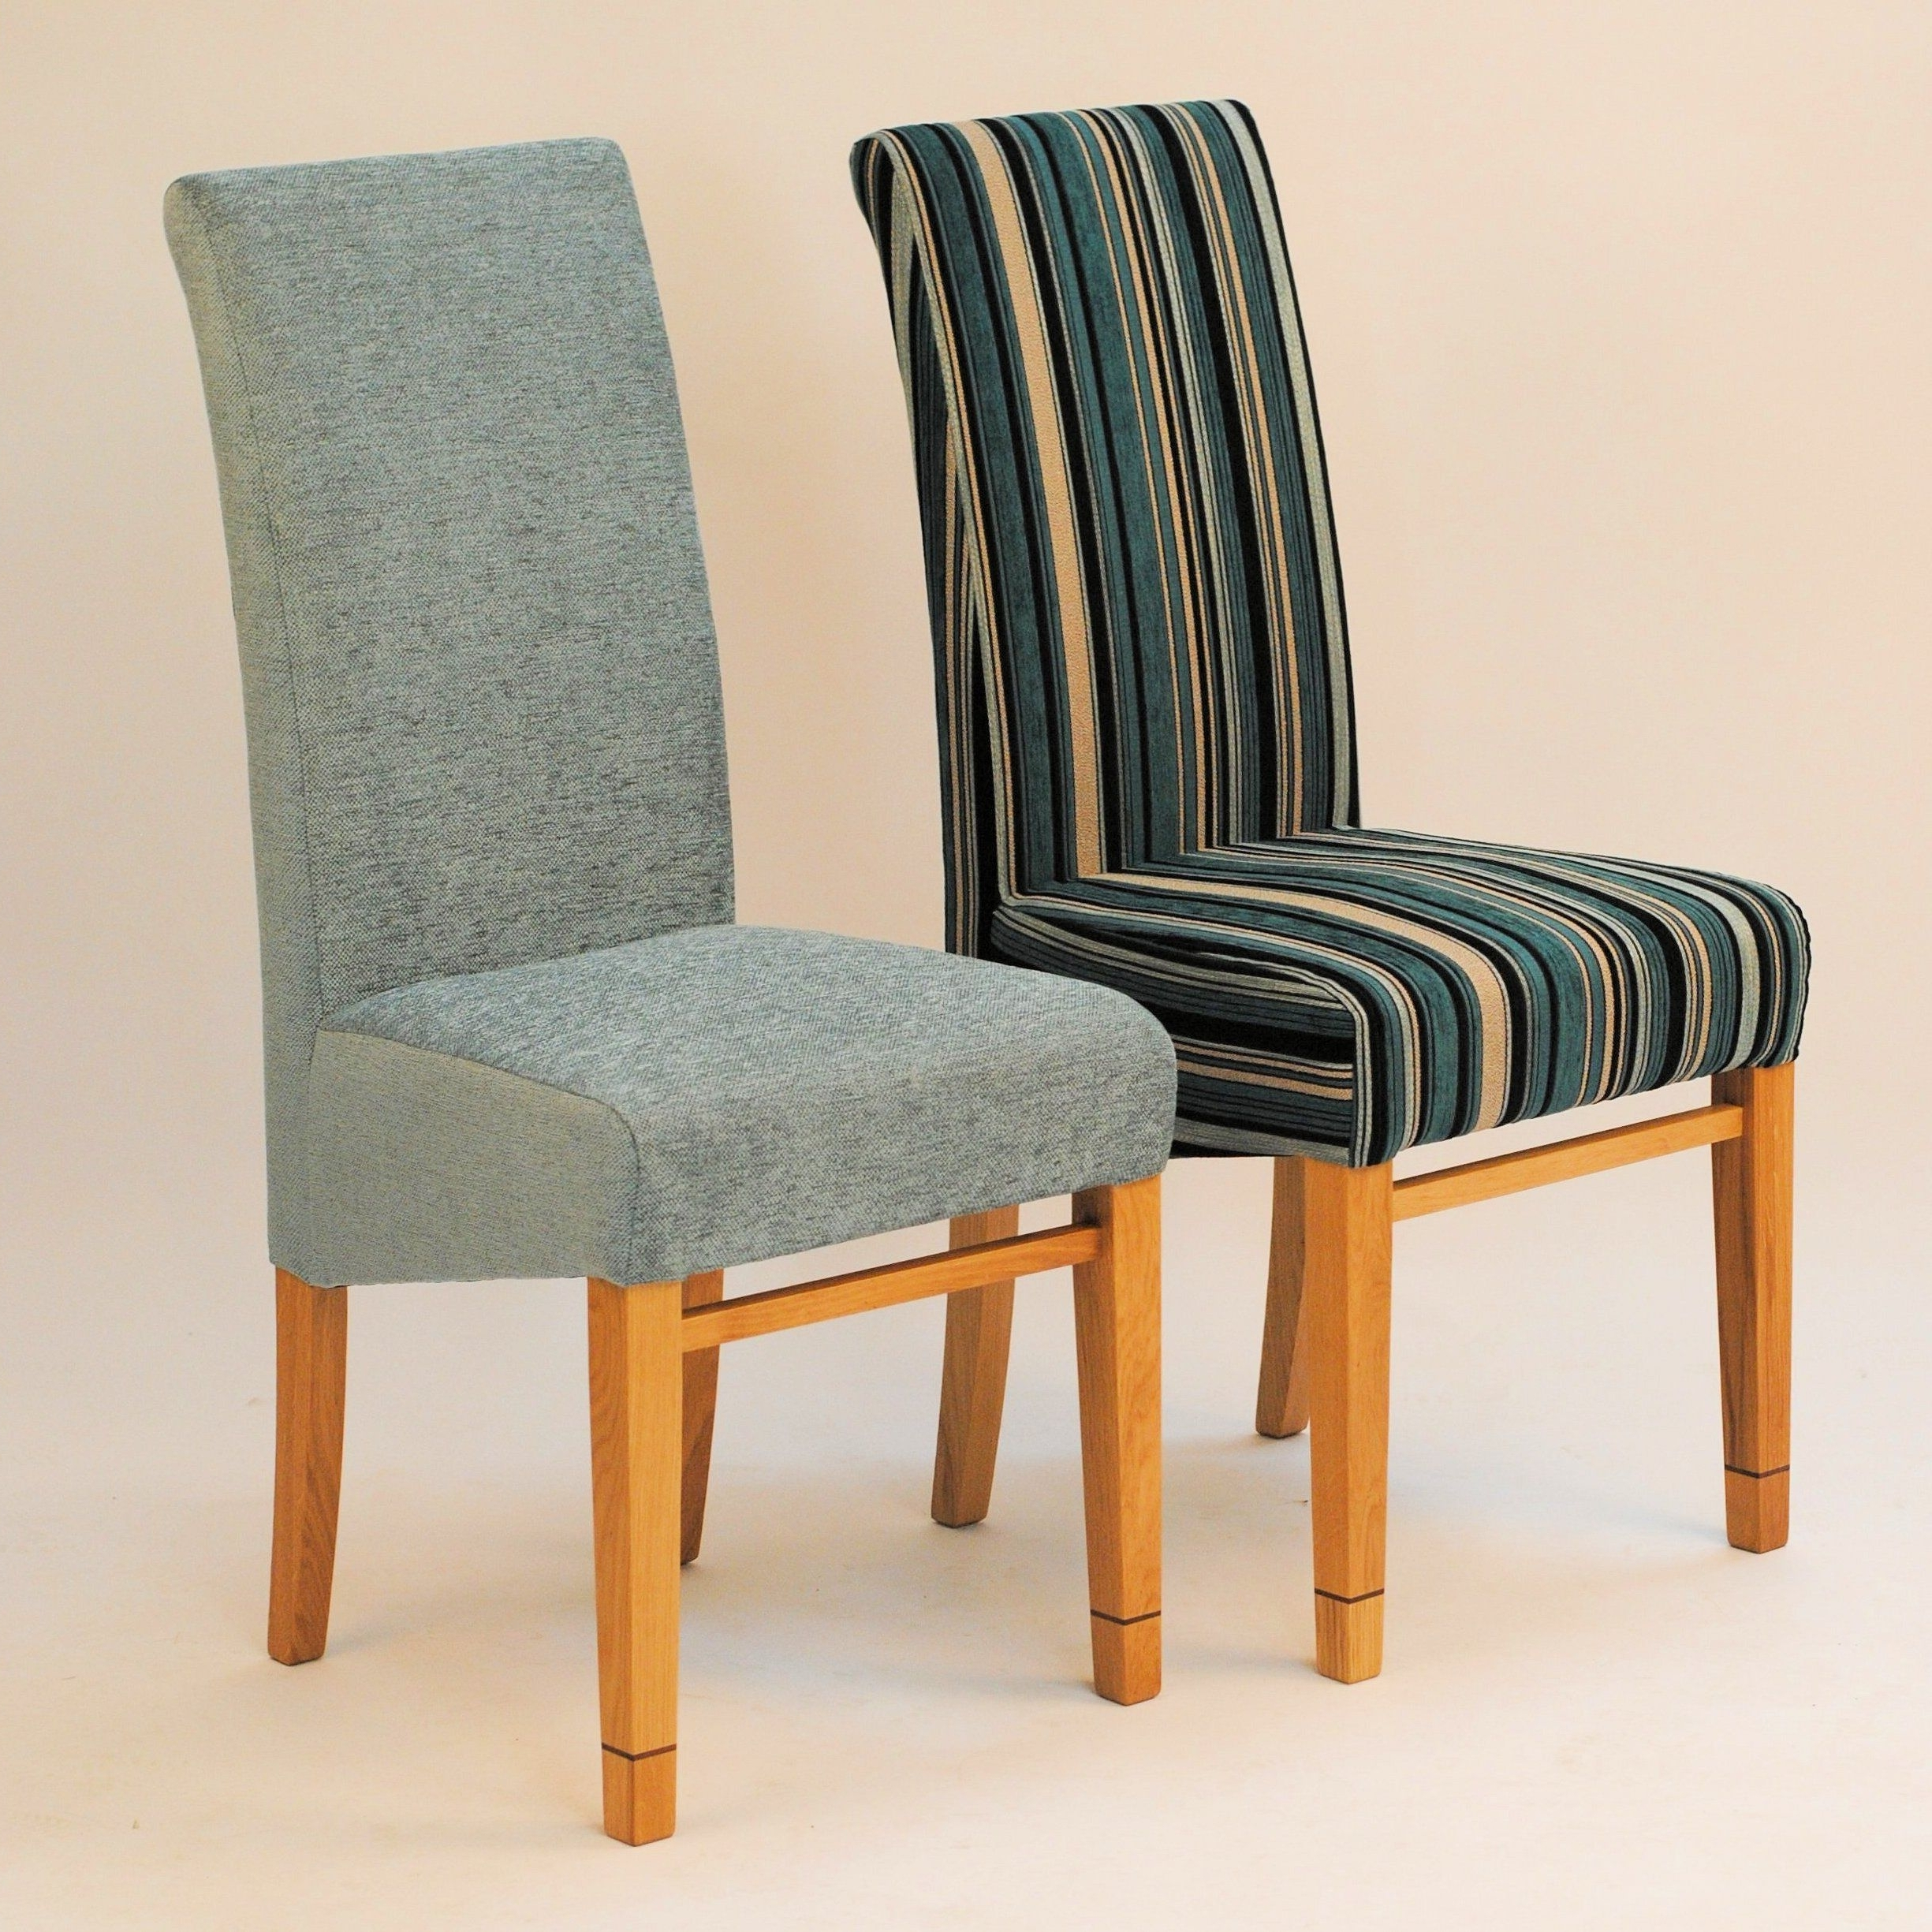 Recent A Pair Of Dining Chairs – Tanner Furniture Designs With Regard To Oak Dining Chairs (View 24 of 25)